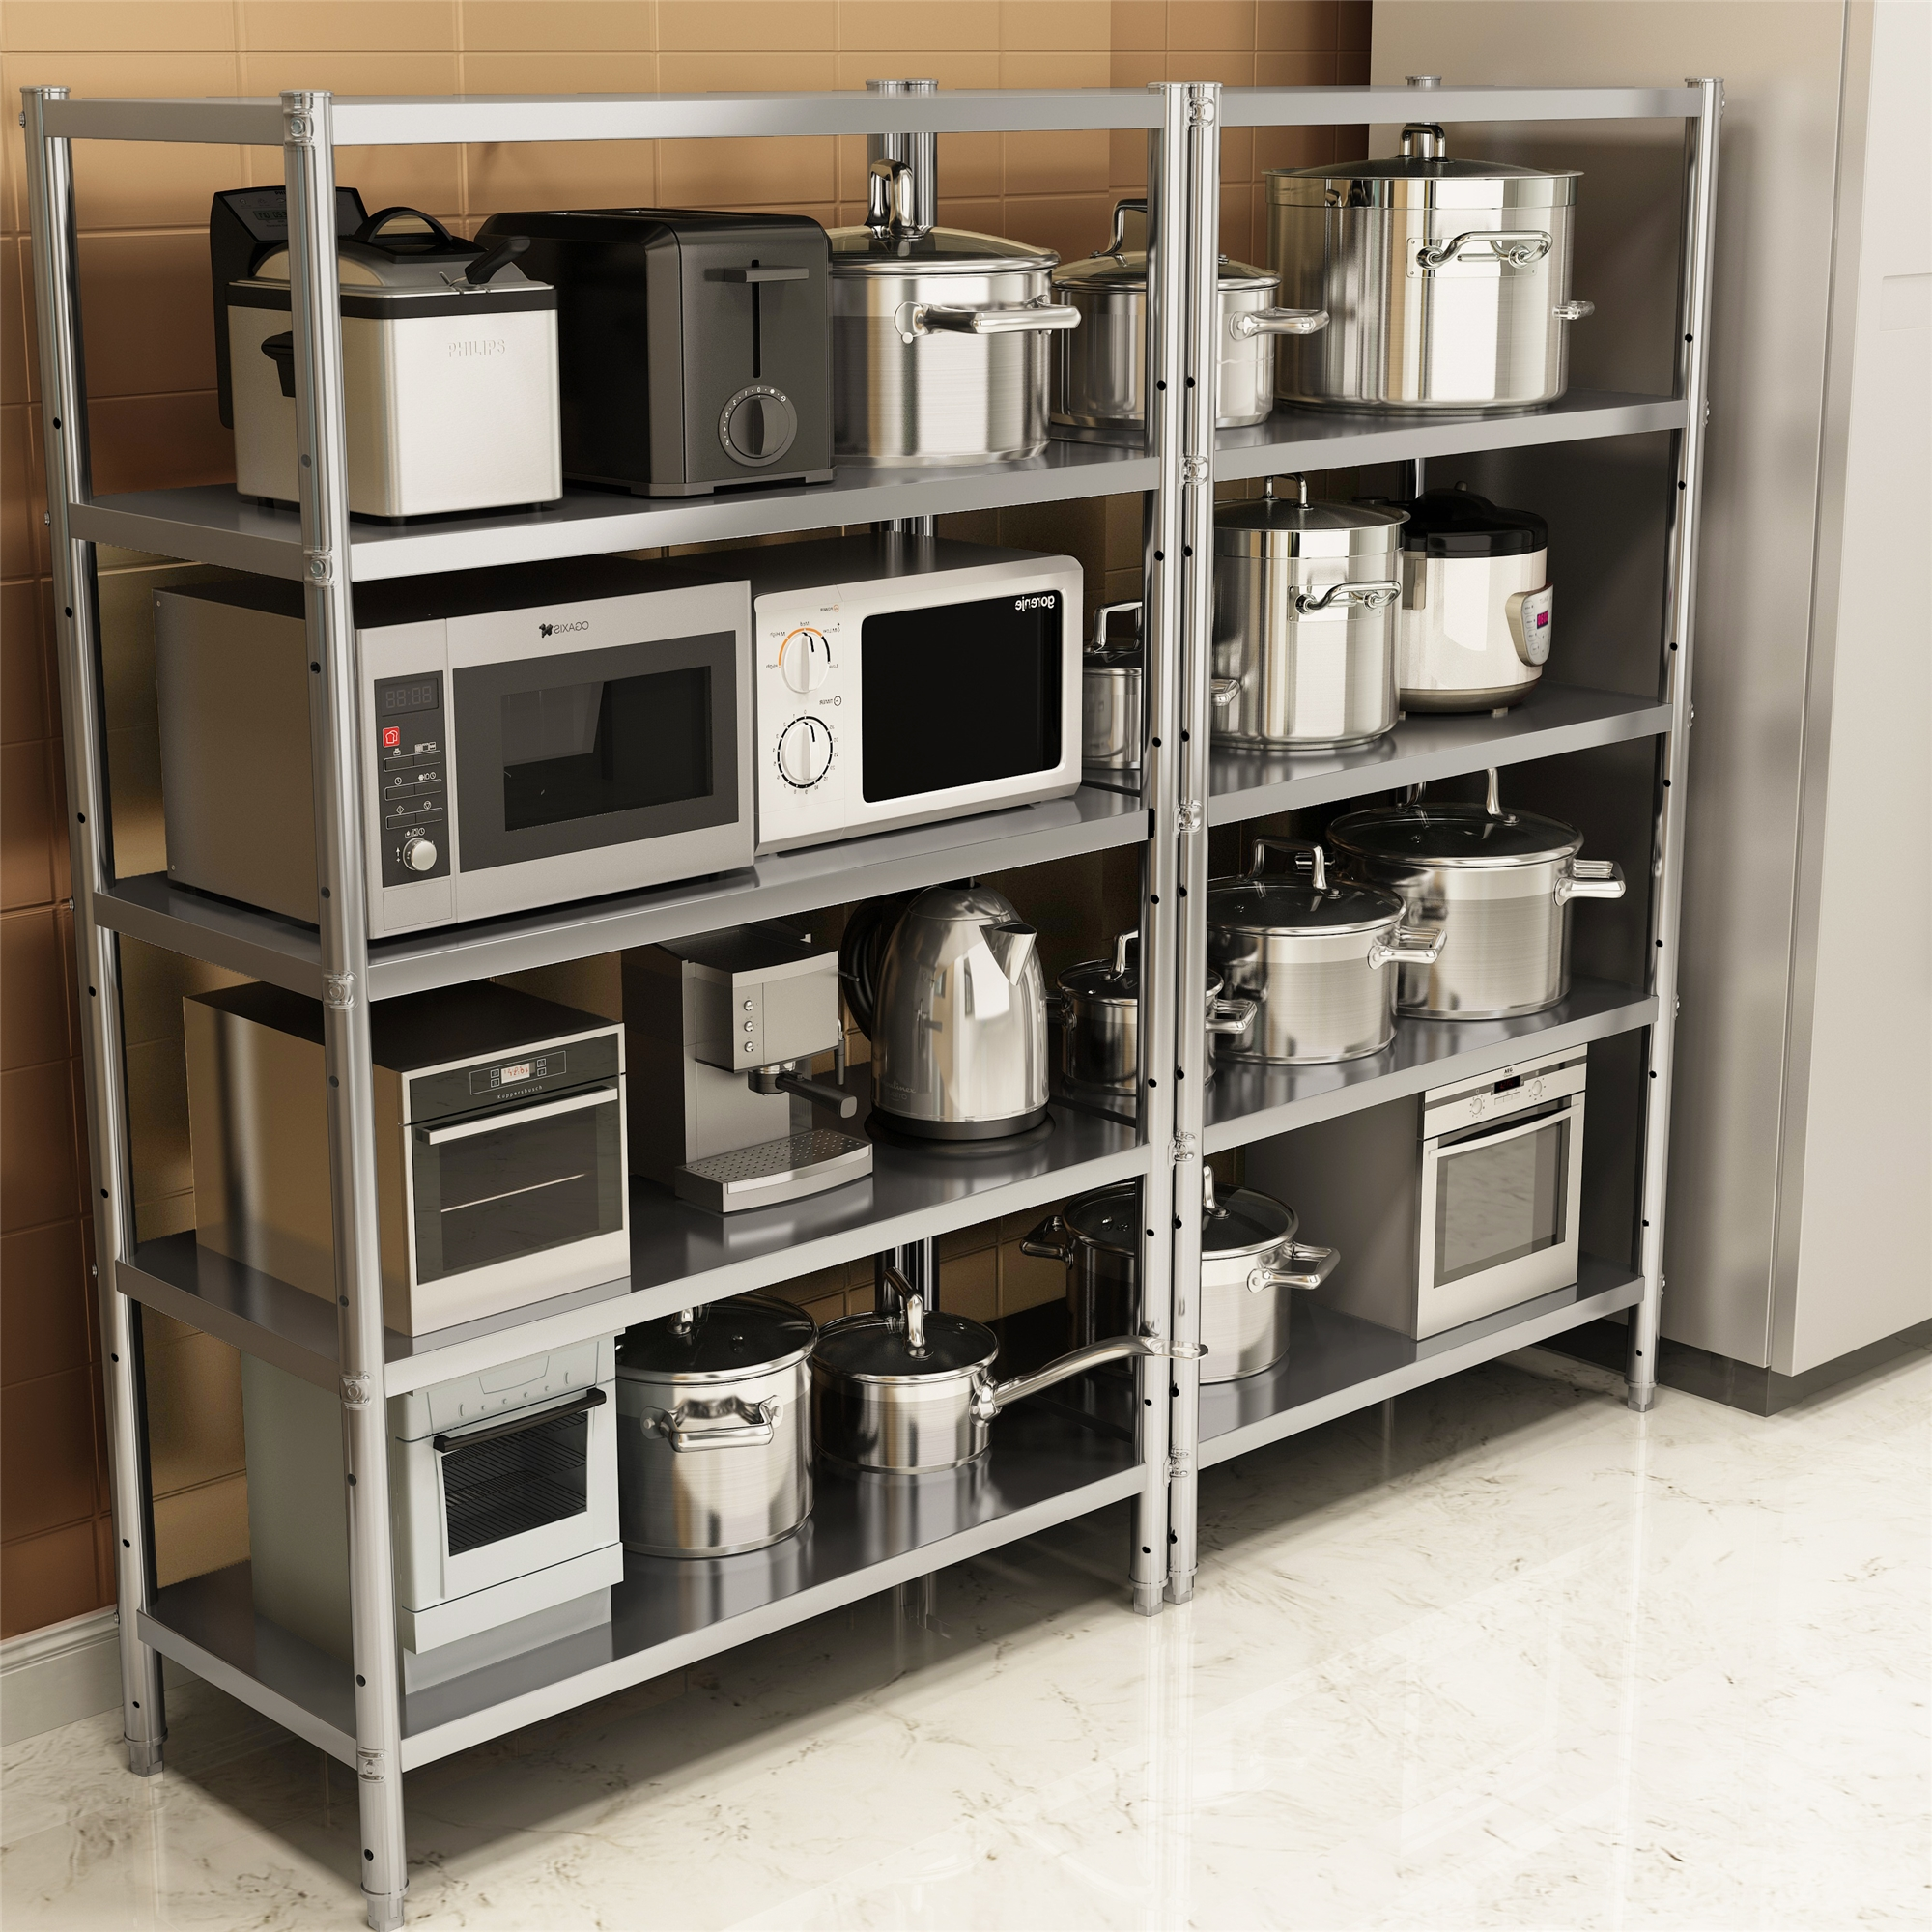 Usd 81 09 Stainless Steel Kitchen Shelf Floor Multi Layer Shelf Shelf Rack Storage Shelf Shelf Storage Rack 5 Thin Floor Wholesale From China Online Shopping Buy Asian Products Online From The